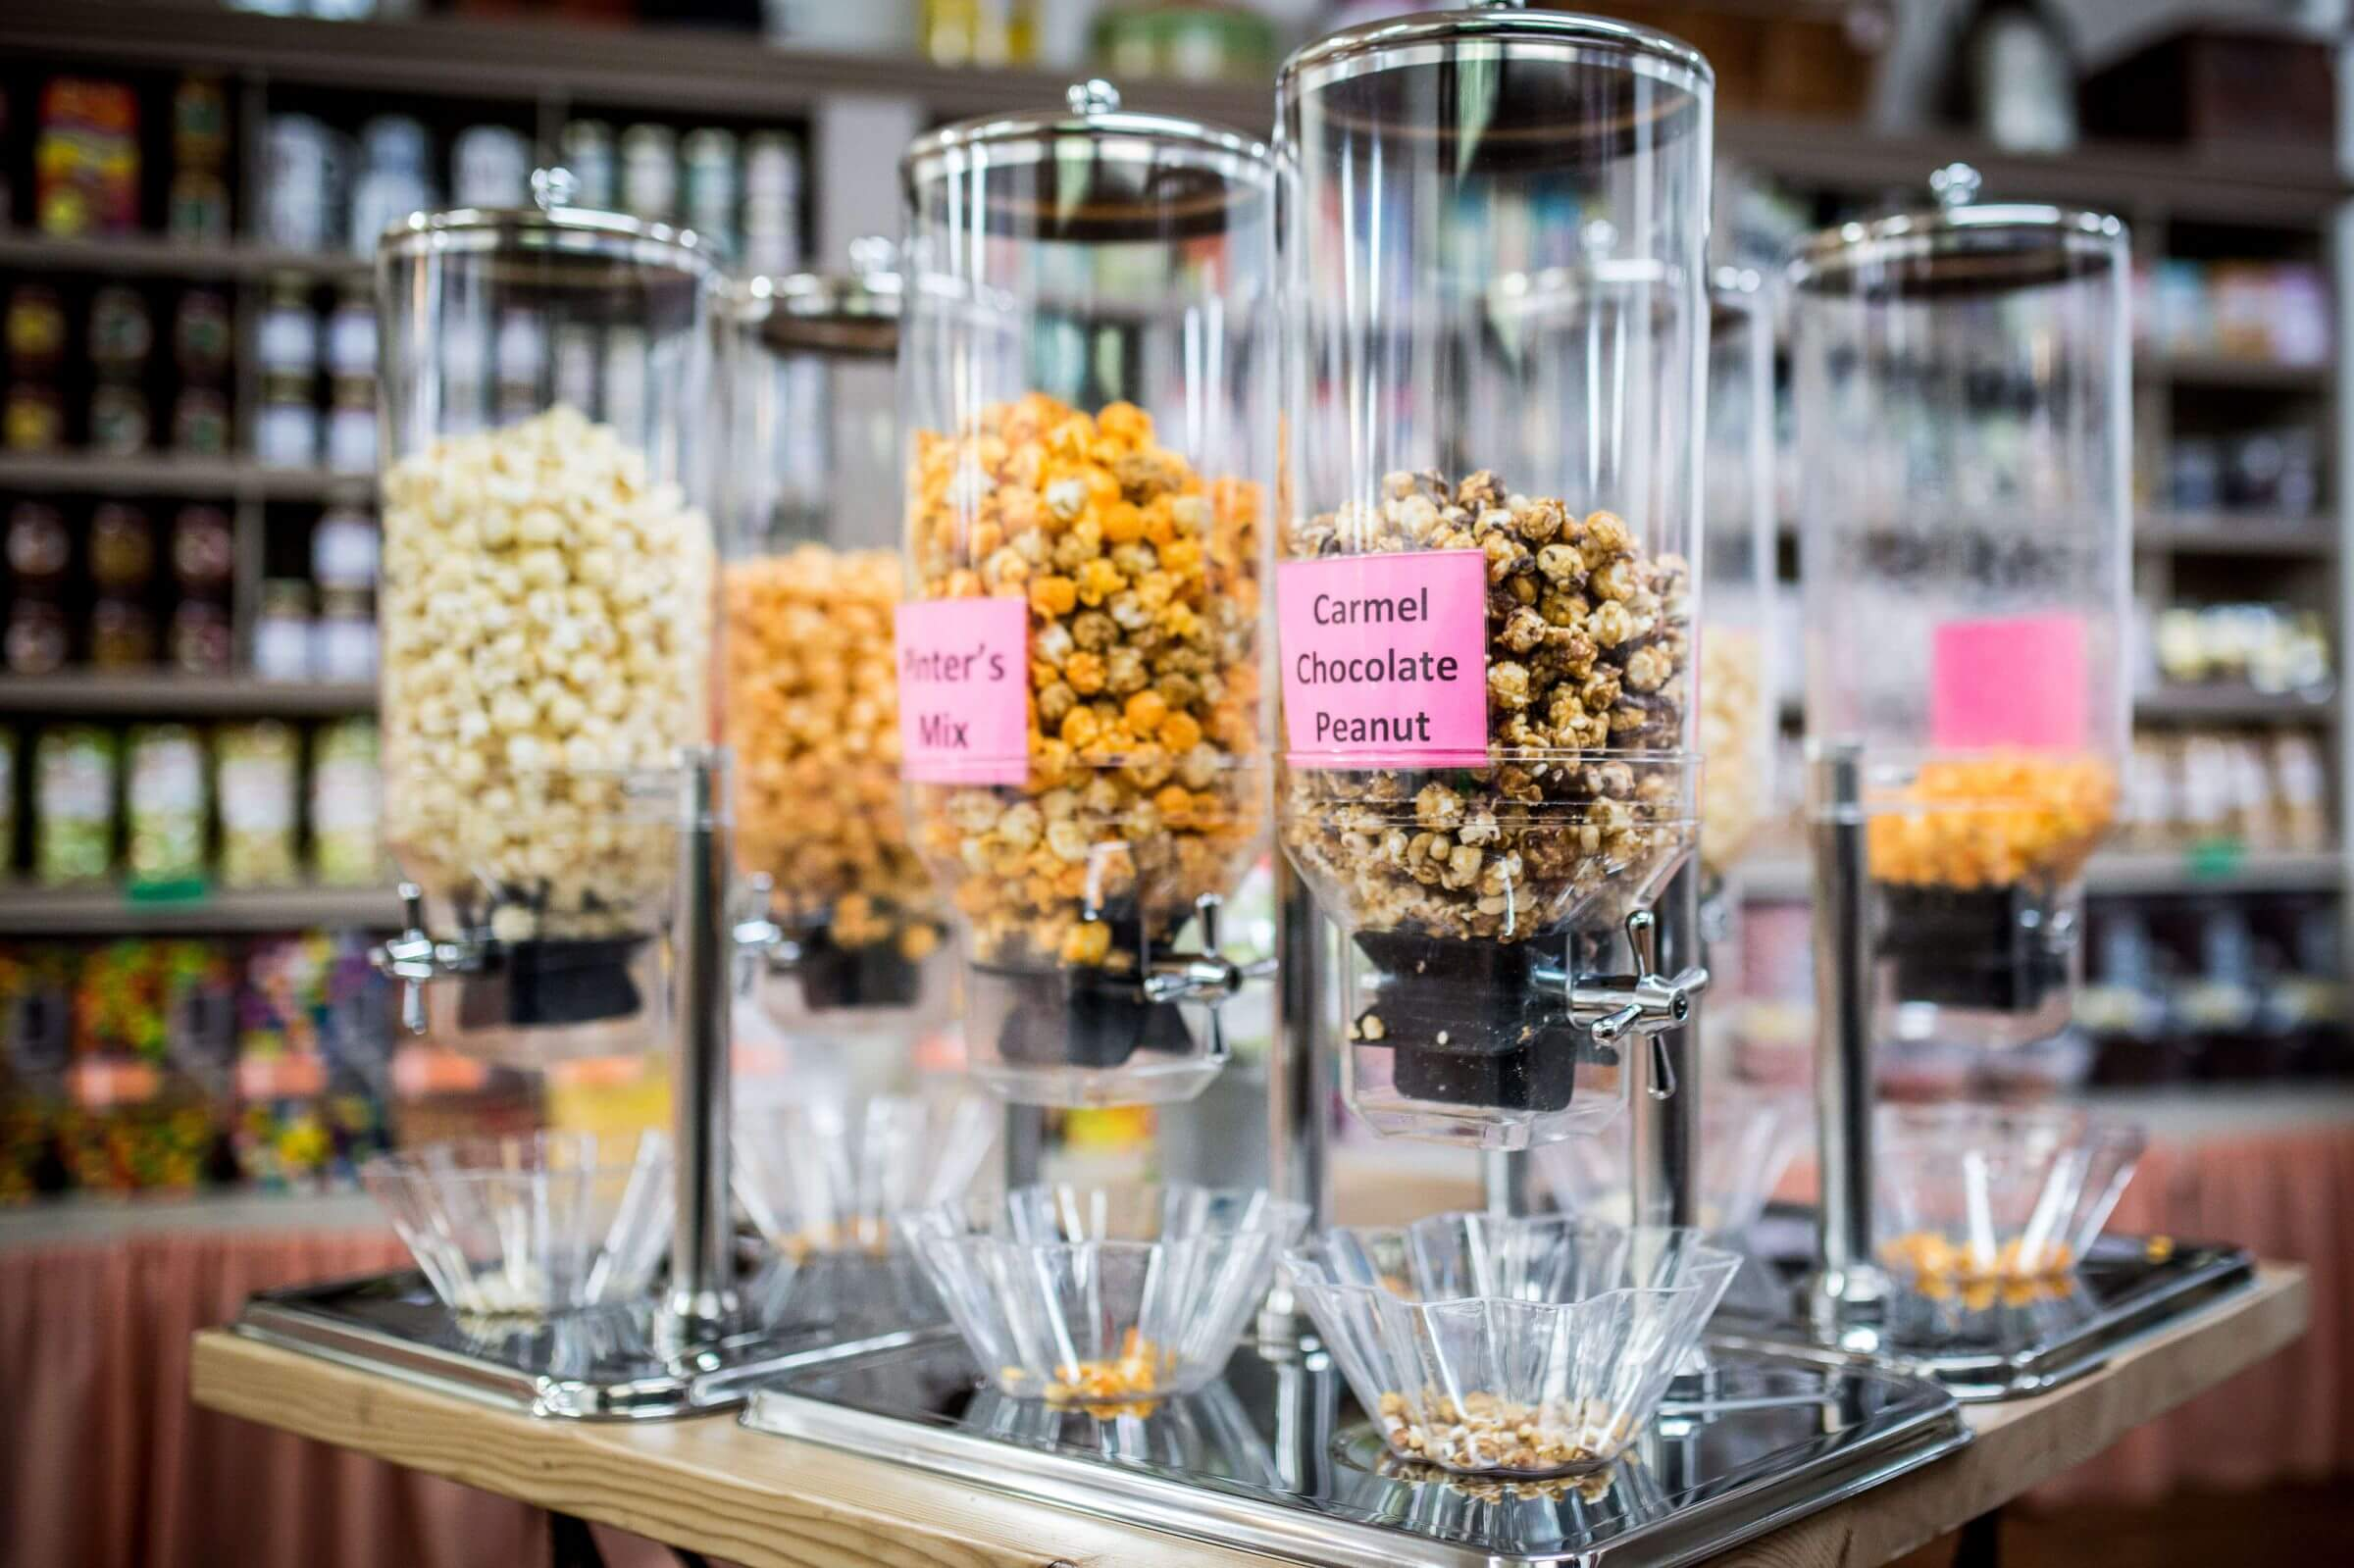 Containers of popcorn at the Pinter's Candies & Gifts Shop